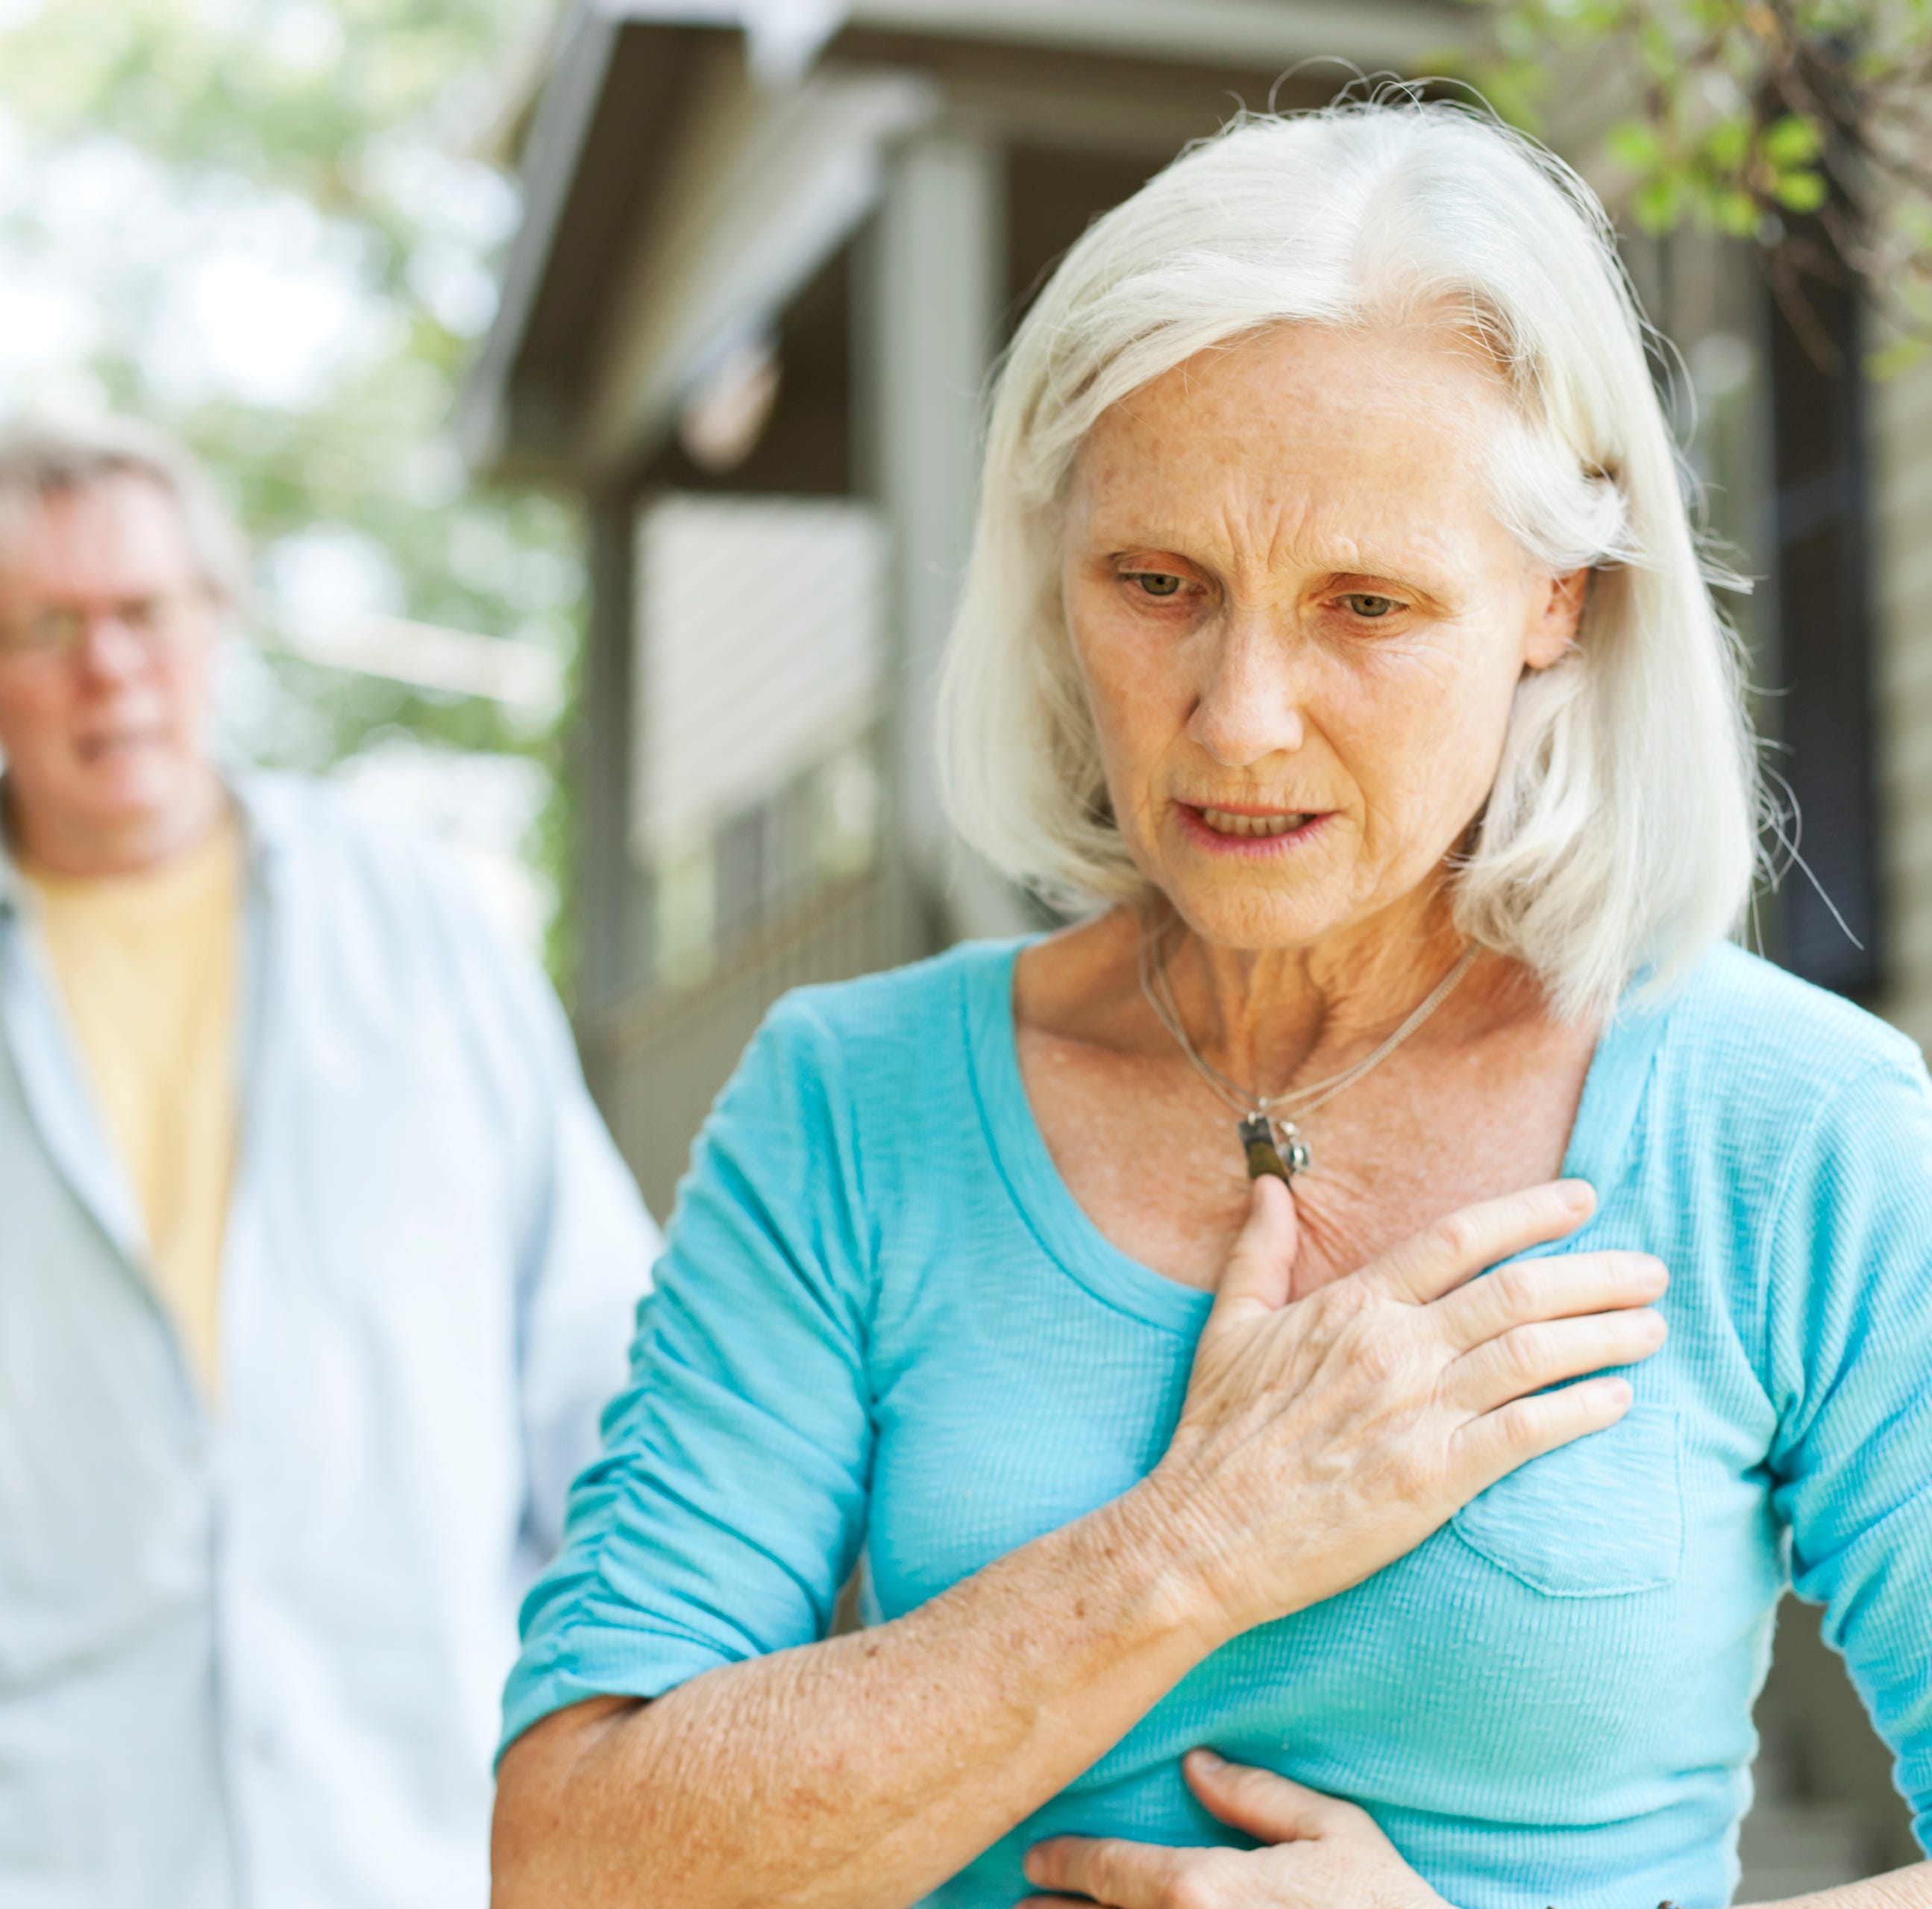 Are you at risk of a heart attack? Here's how to tell